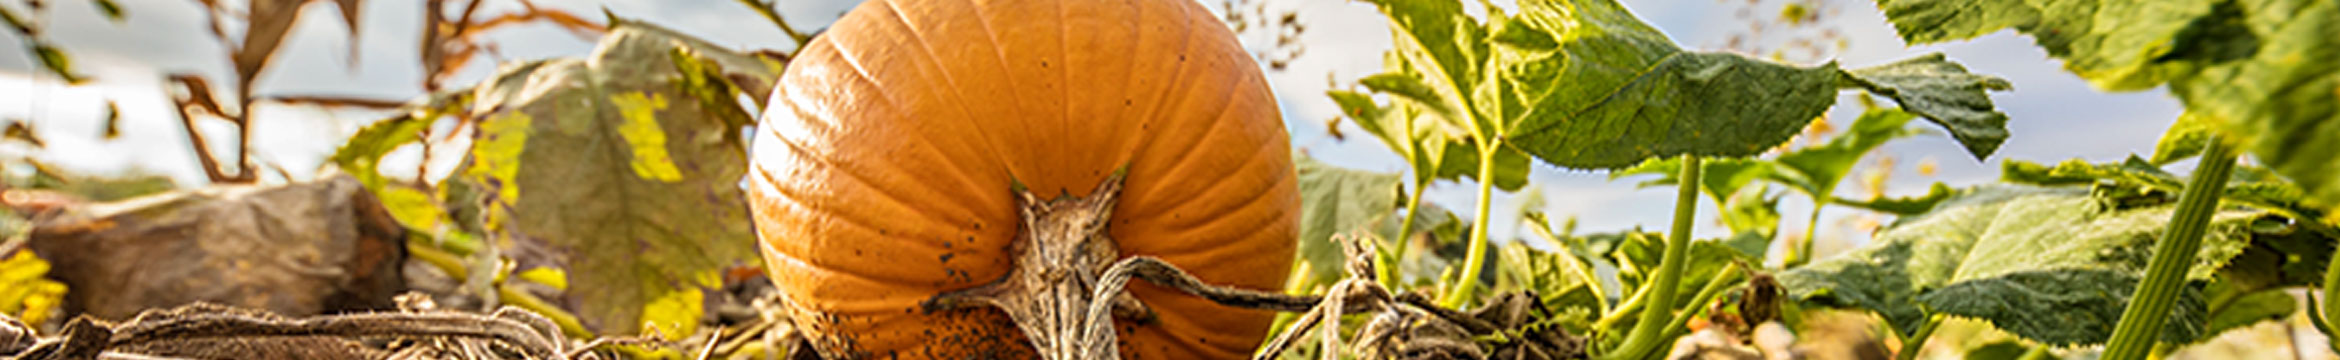 Pumpkin on a farm, Country Financial - Even the biggest goals start with simple steps